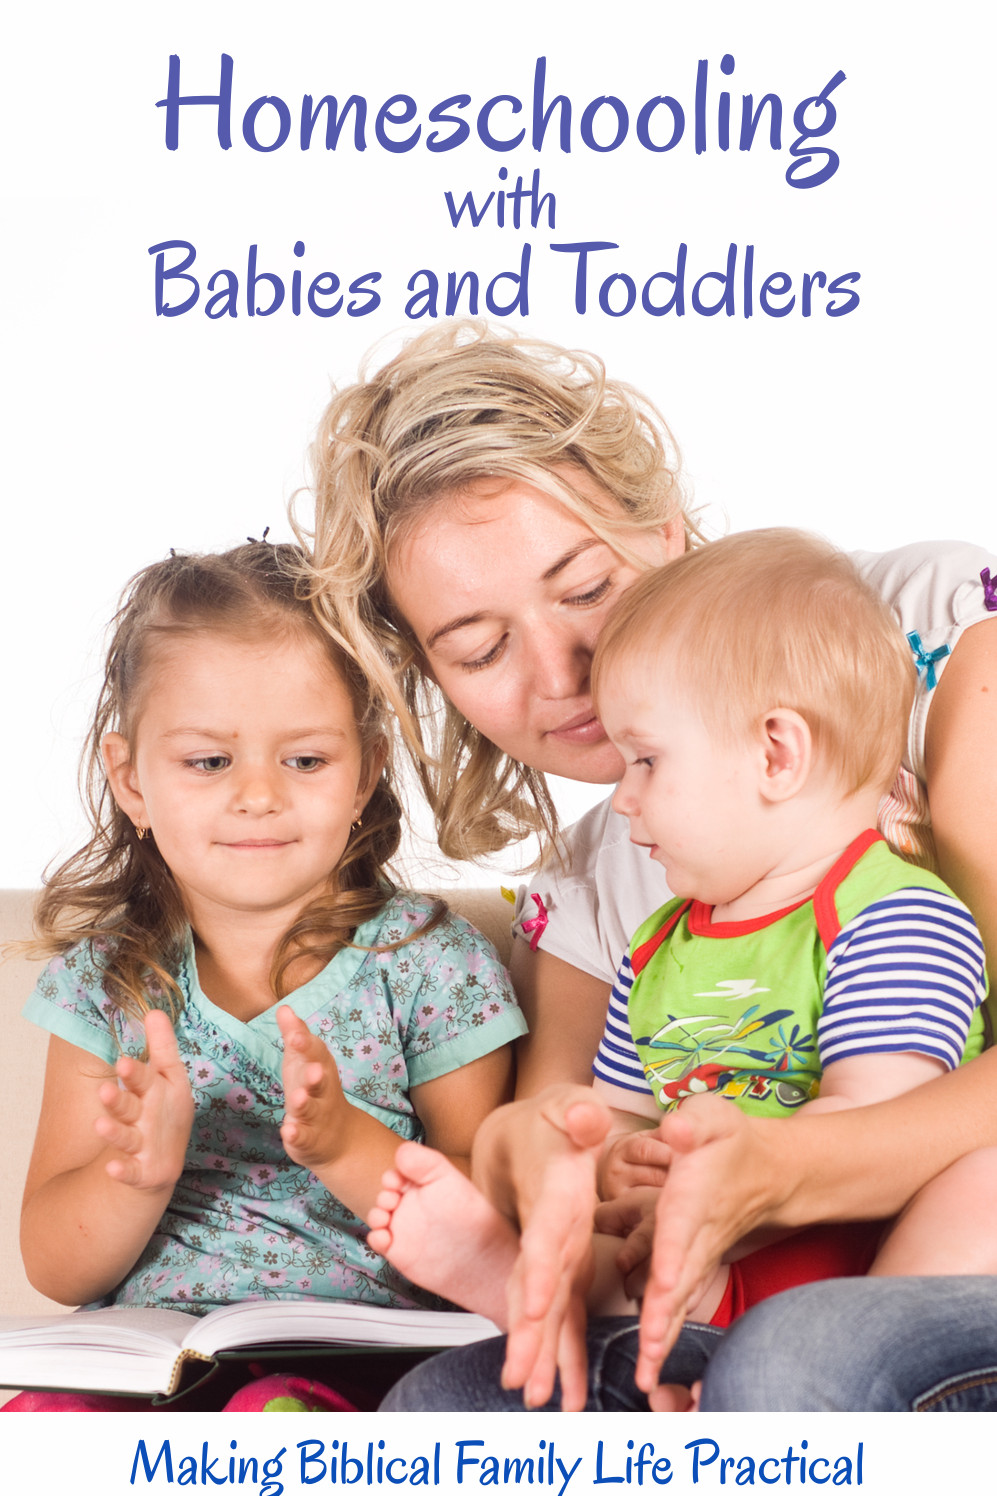 How to Homeschool With Infants, Toddlers, or Preschoolers